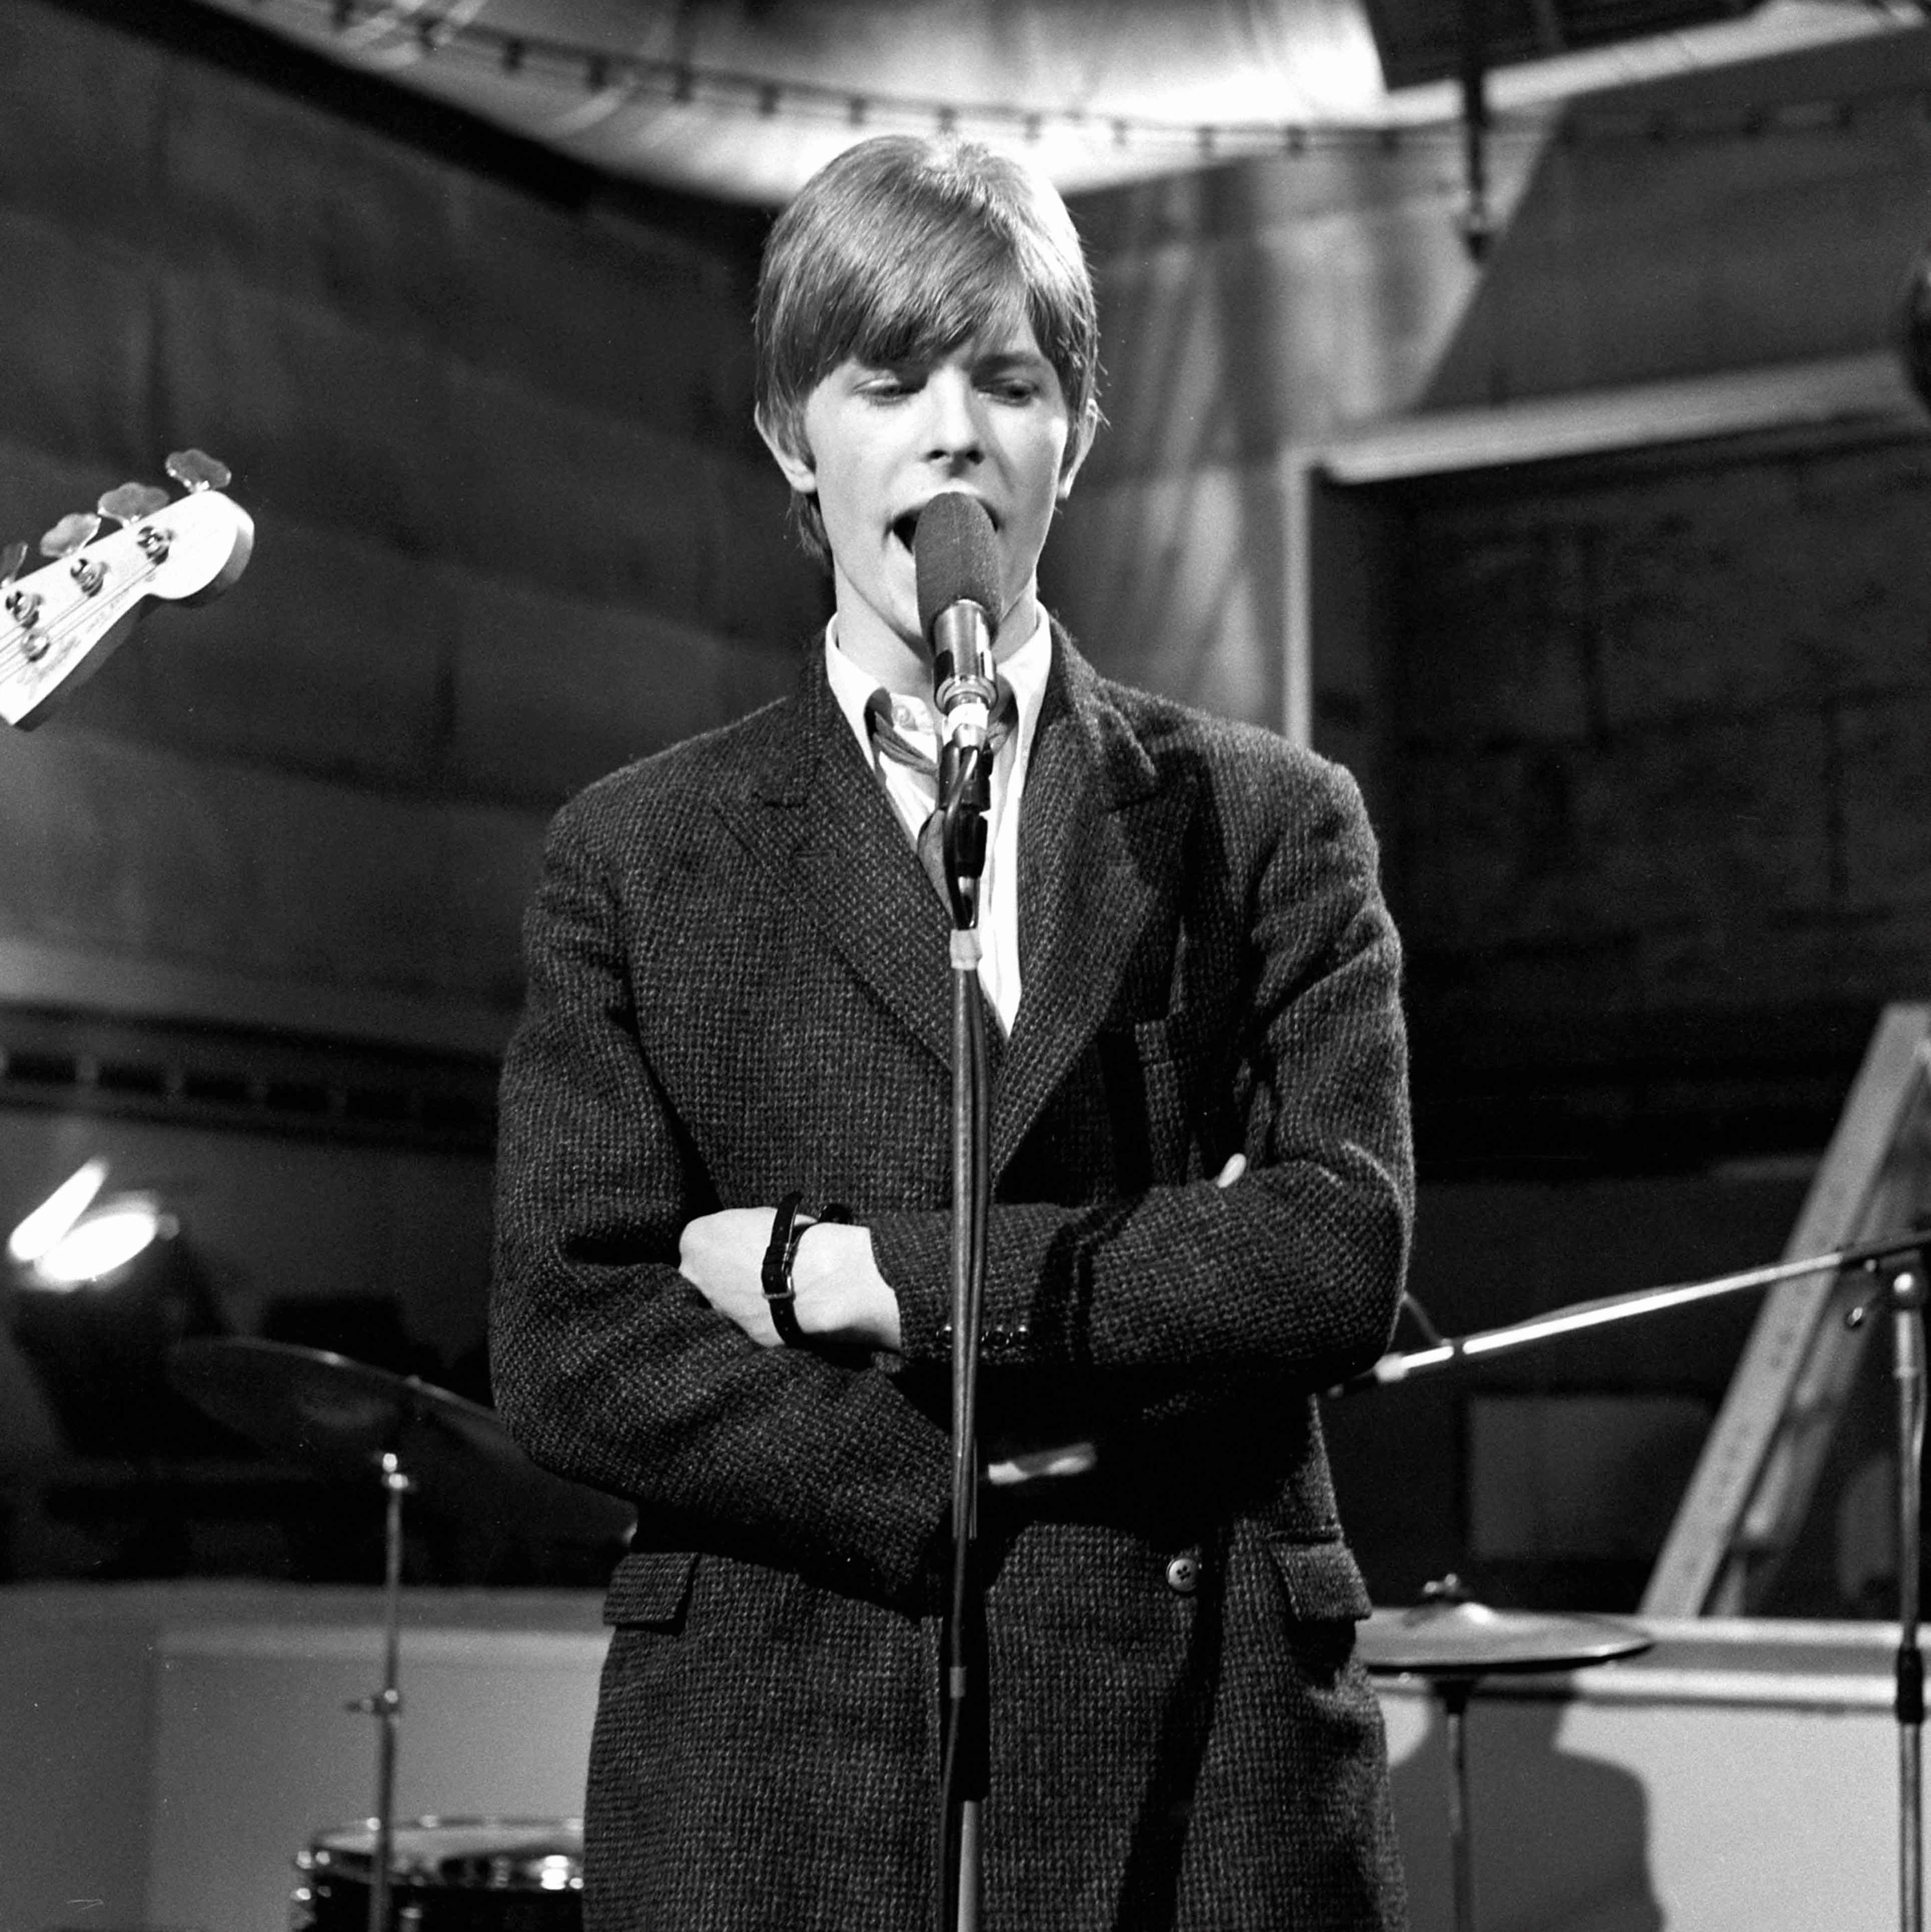 David Bowie and The Buzz in 1966